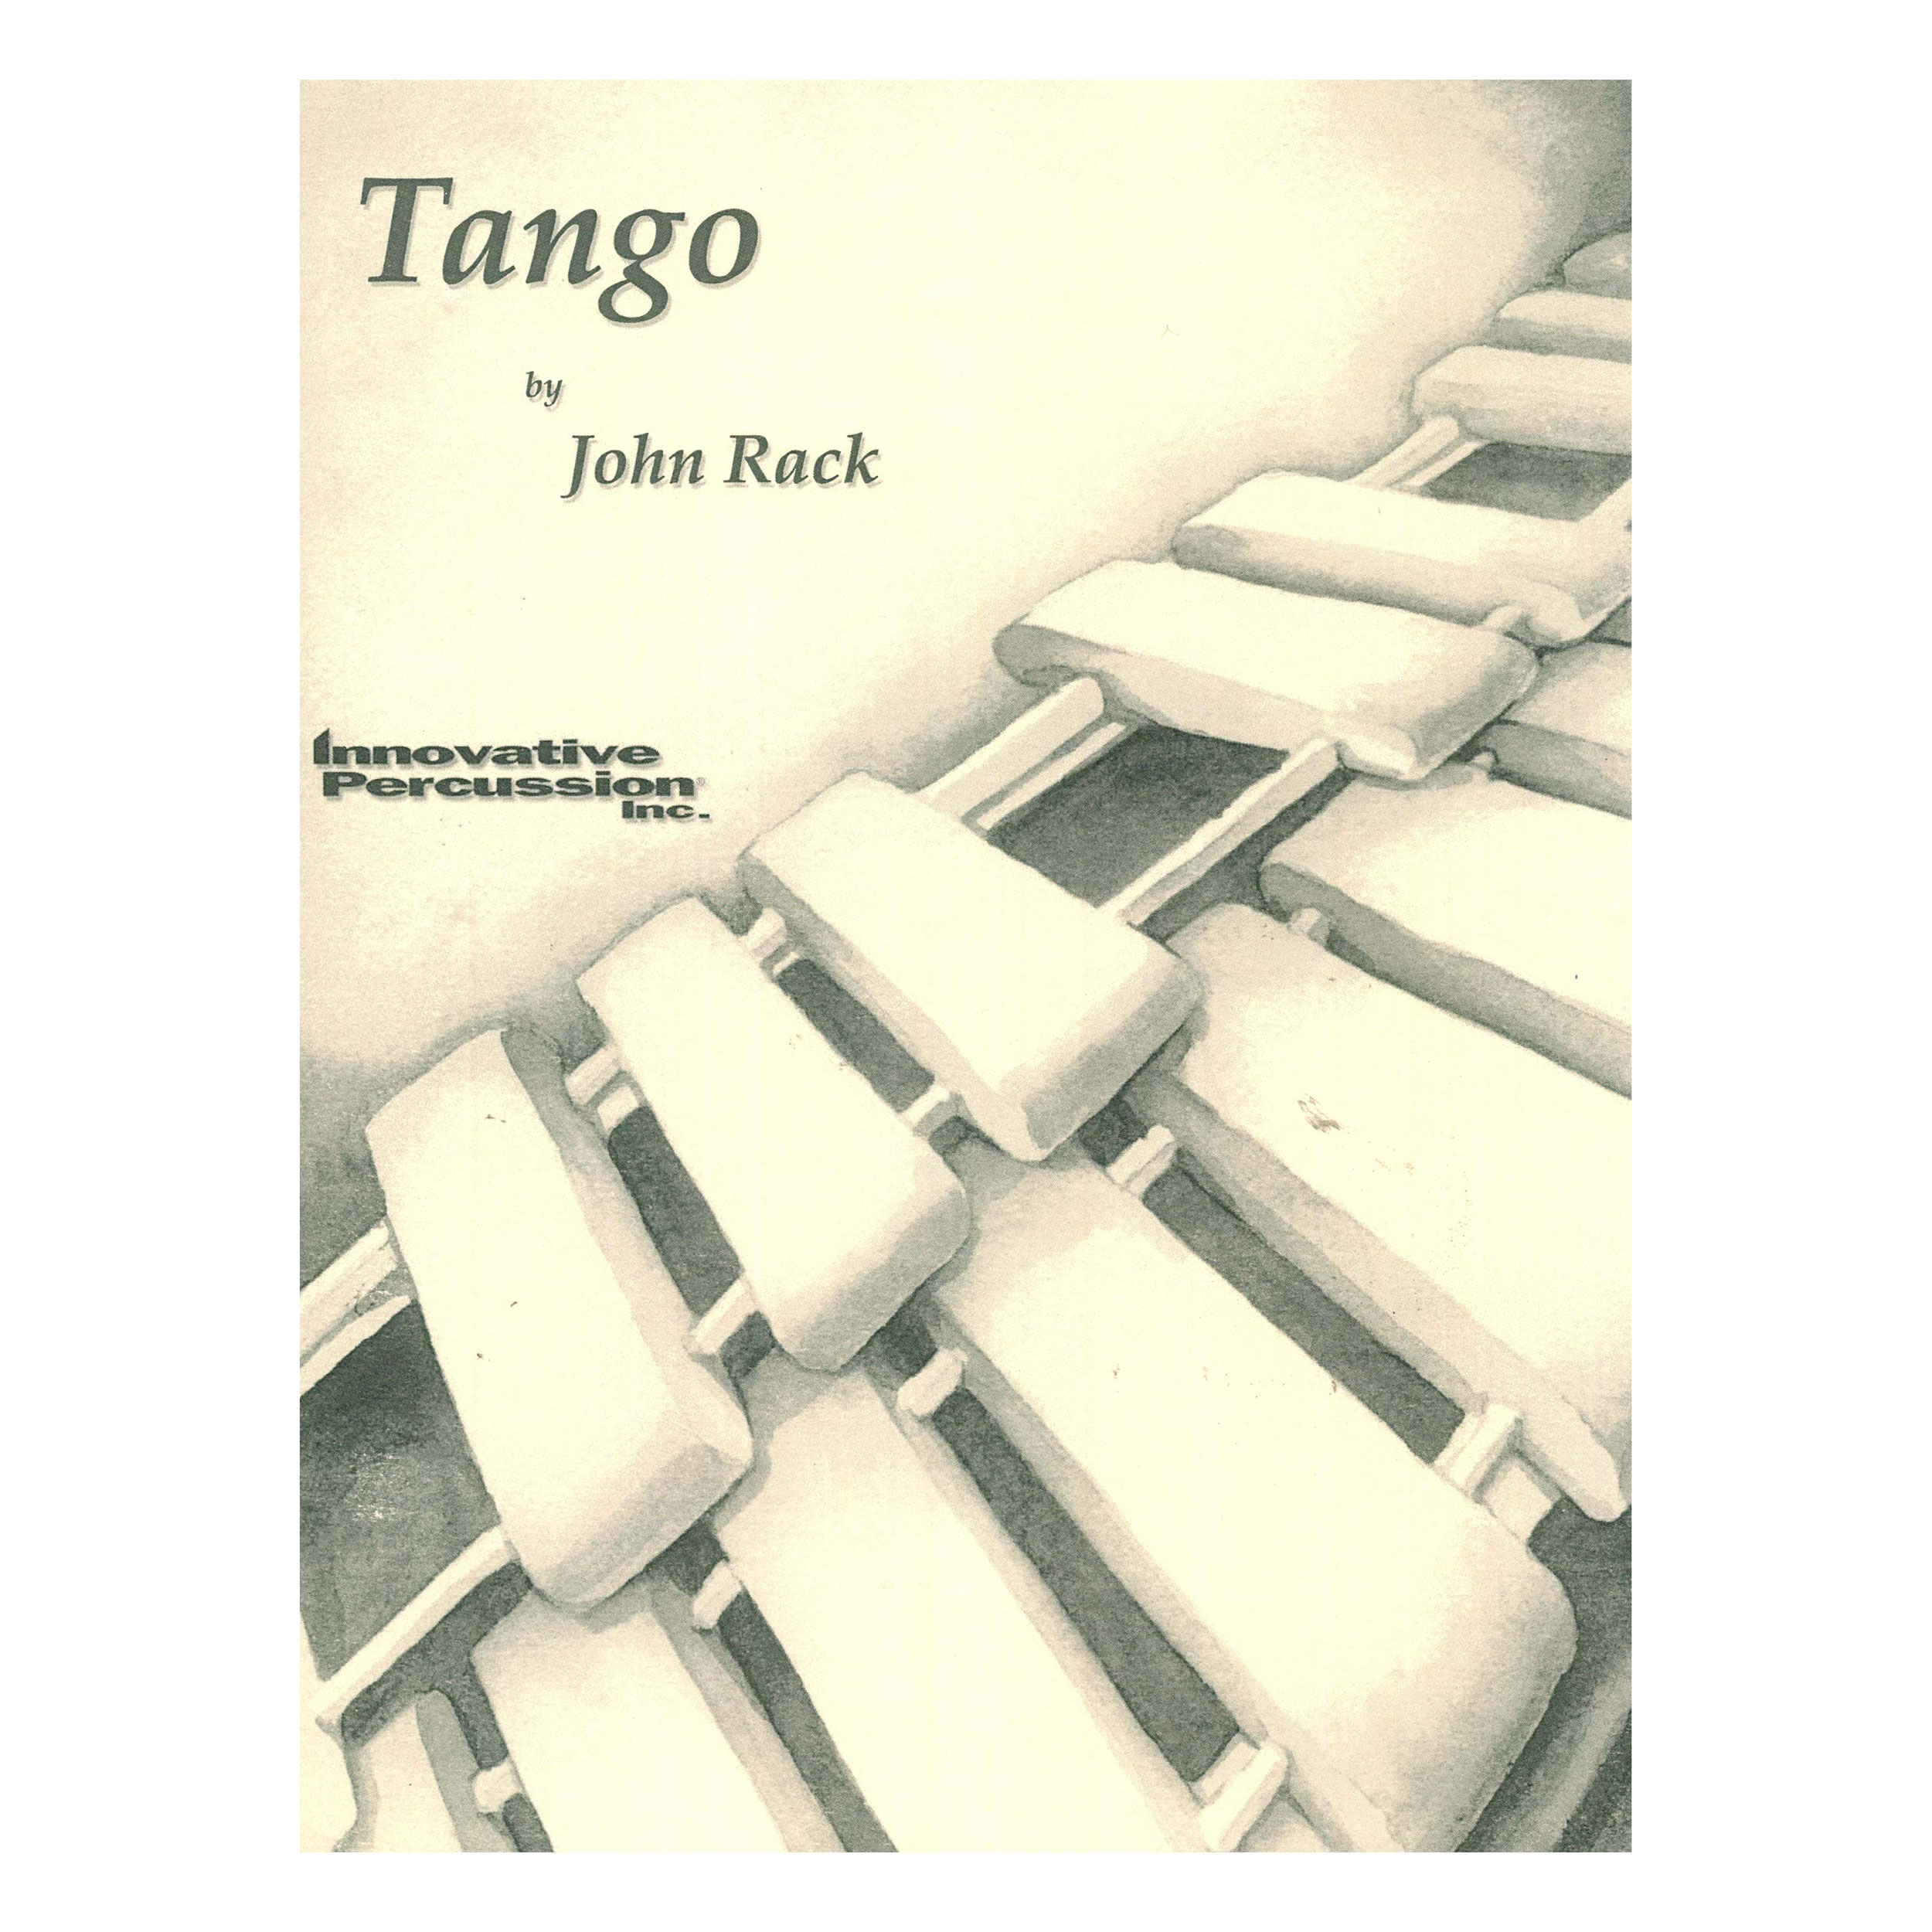 Tango for Timpani by John Rack